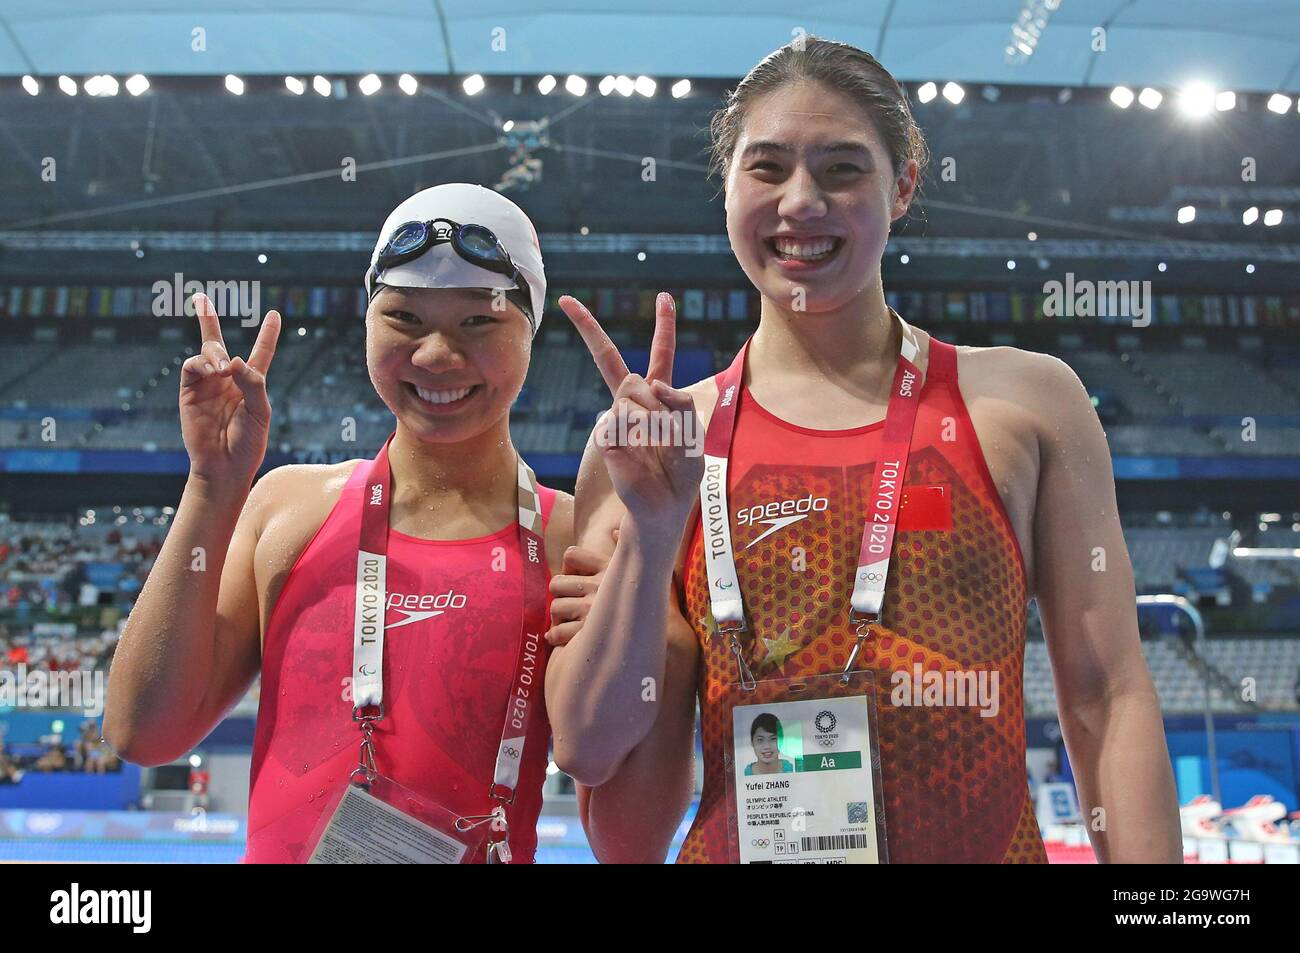 Tokyo, Japan. 28th July, 2021. Zhang Yufei (R) and Yu Liyan of China pose after the women's 200m butterfly semifinal at the Tokyo 2020 Olympic Games in Tokyo, Japan, July 28, 2021. Credit: Ding Xu/Xinhua/Alamy Live News Stock Photo